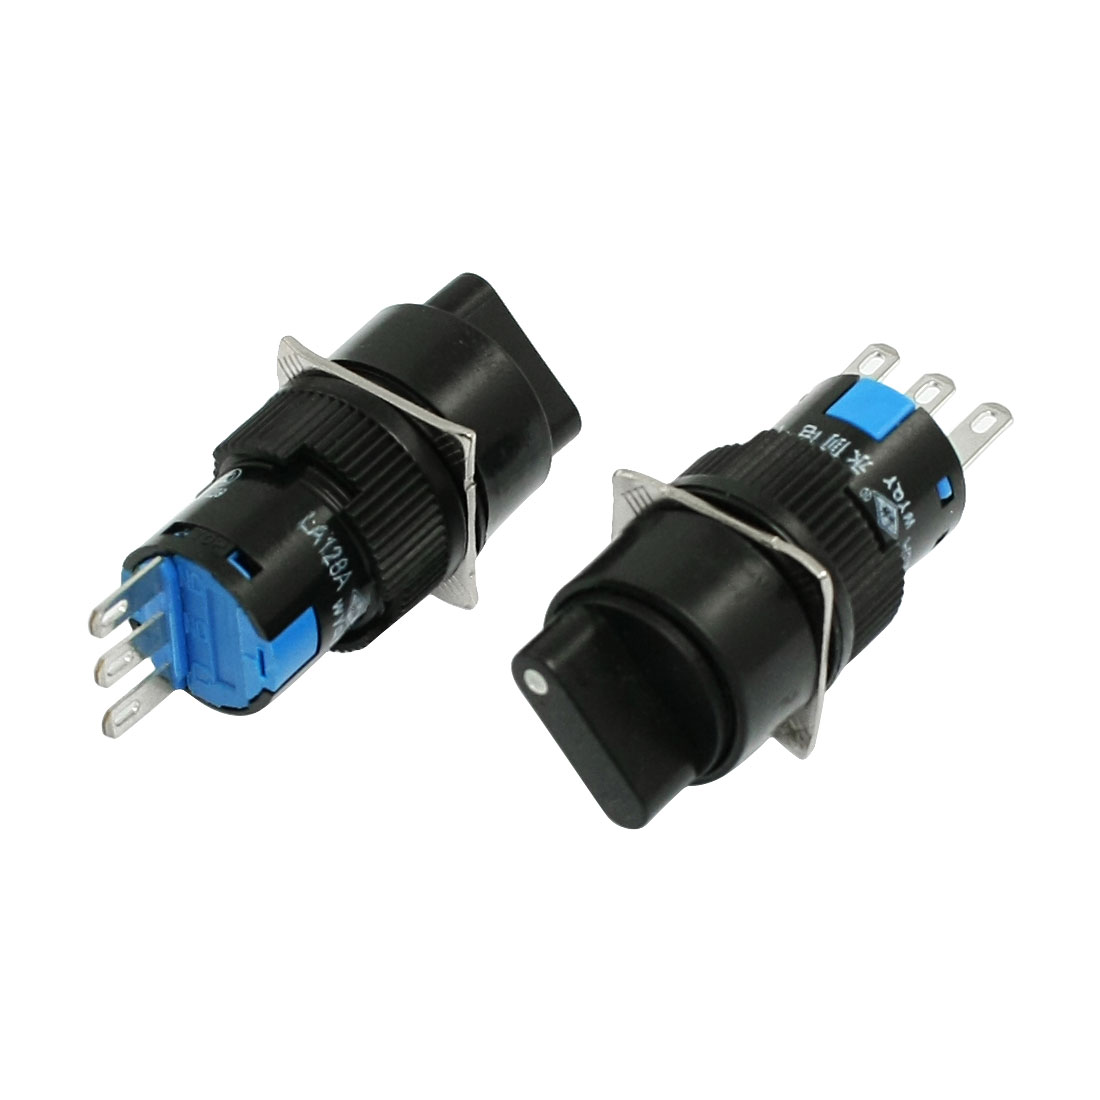 AC 250V 5A Panel Mounting Round SPDT Rotary Selector Push Switch 2 Pcs